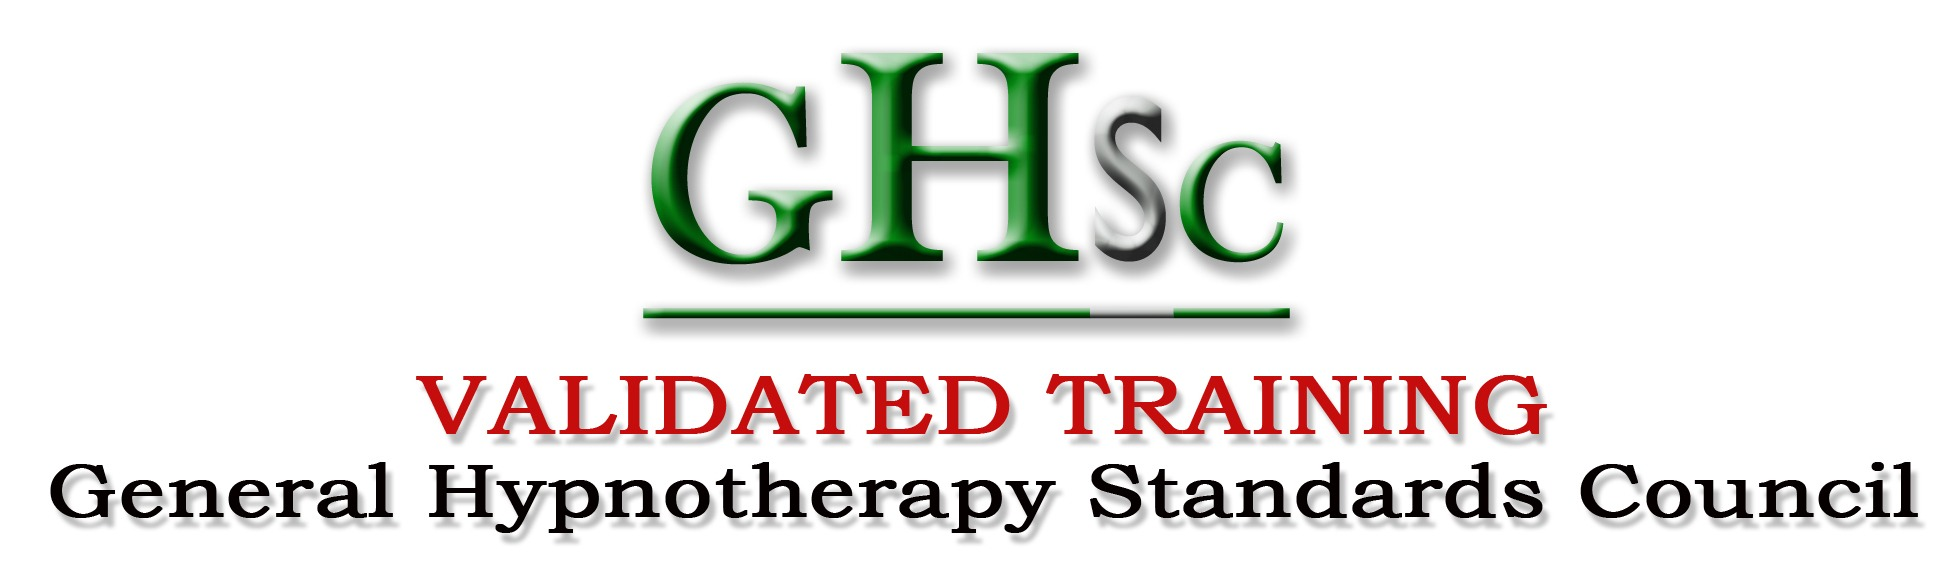 GHSC VALIDATED TRAINING LOGO